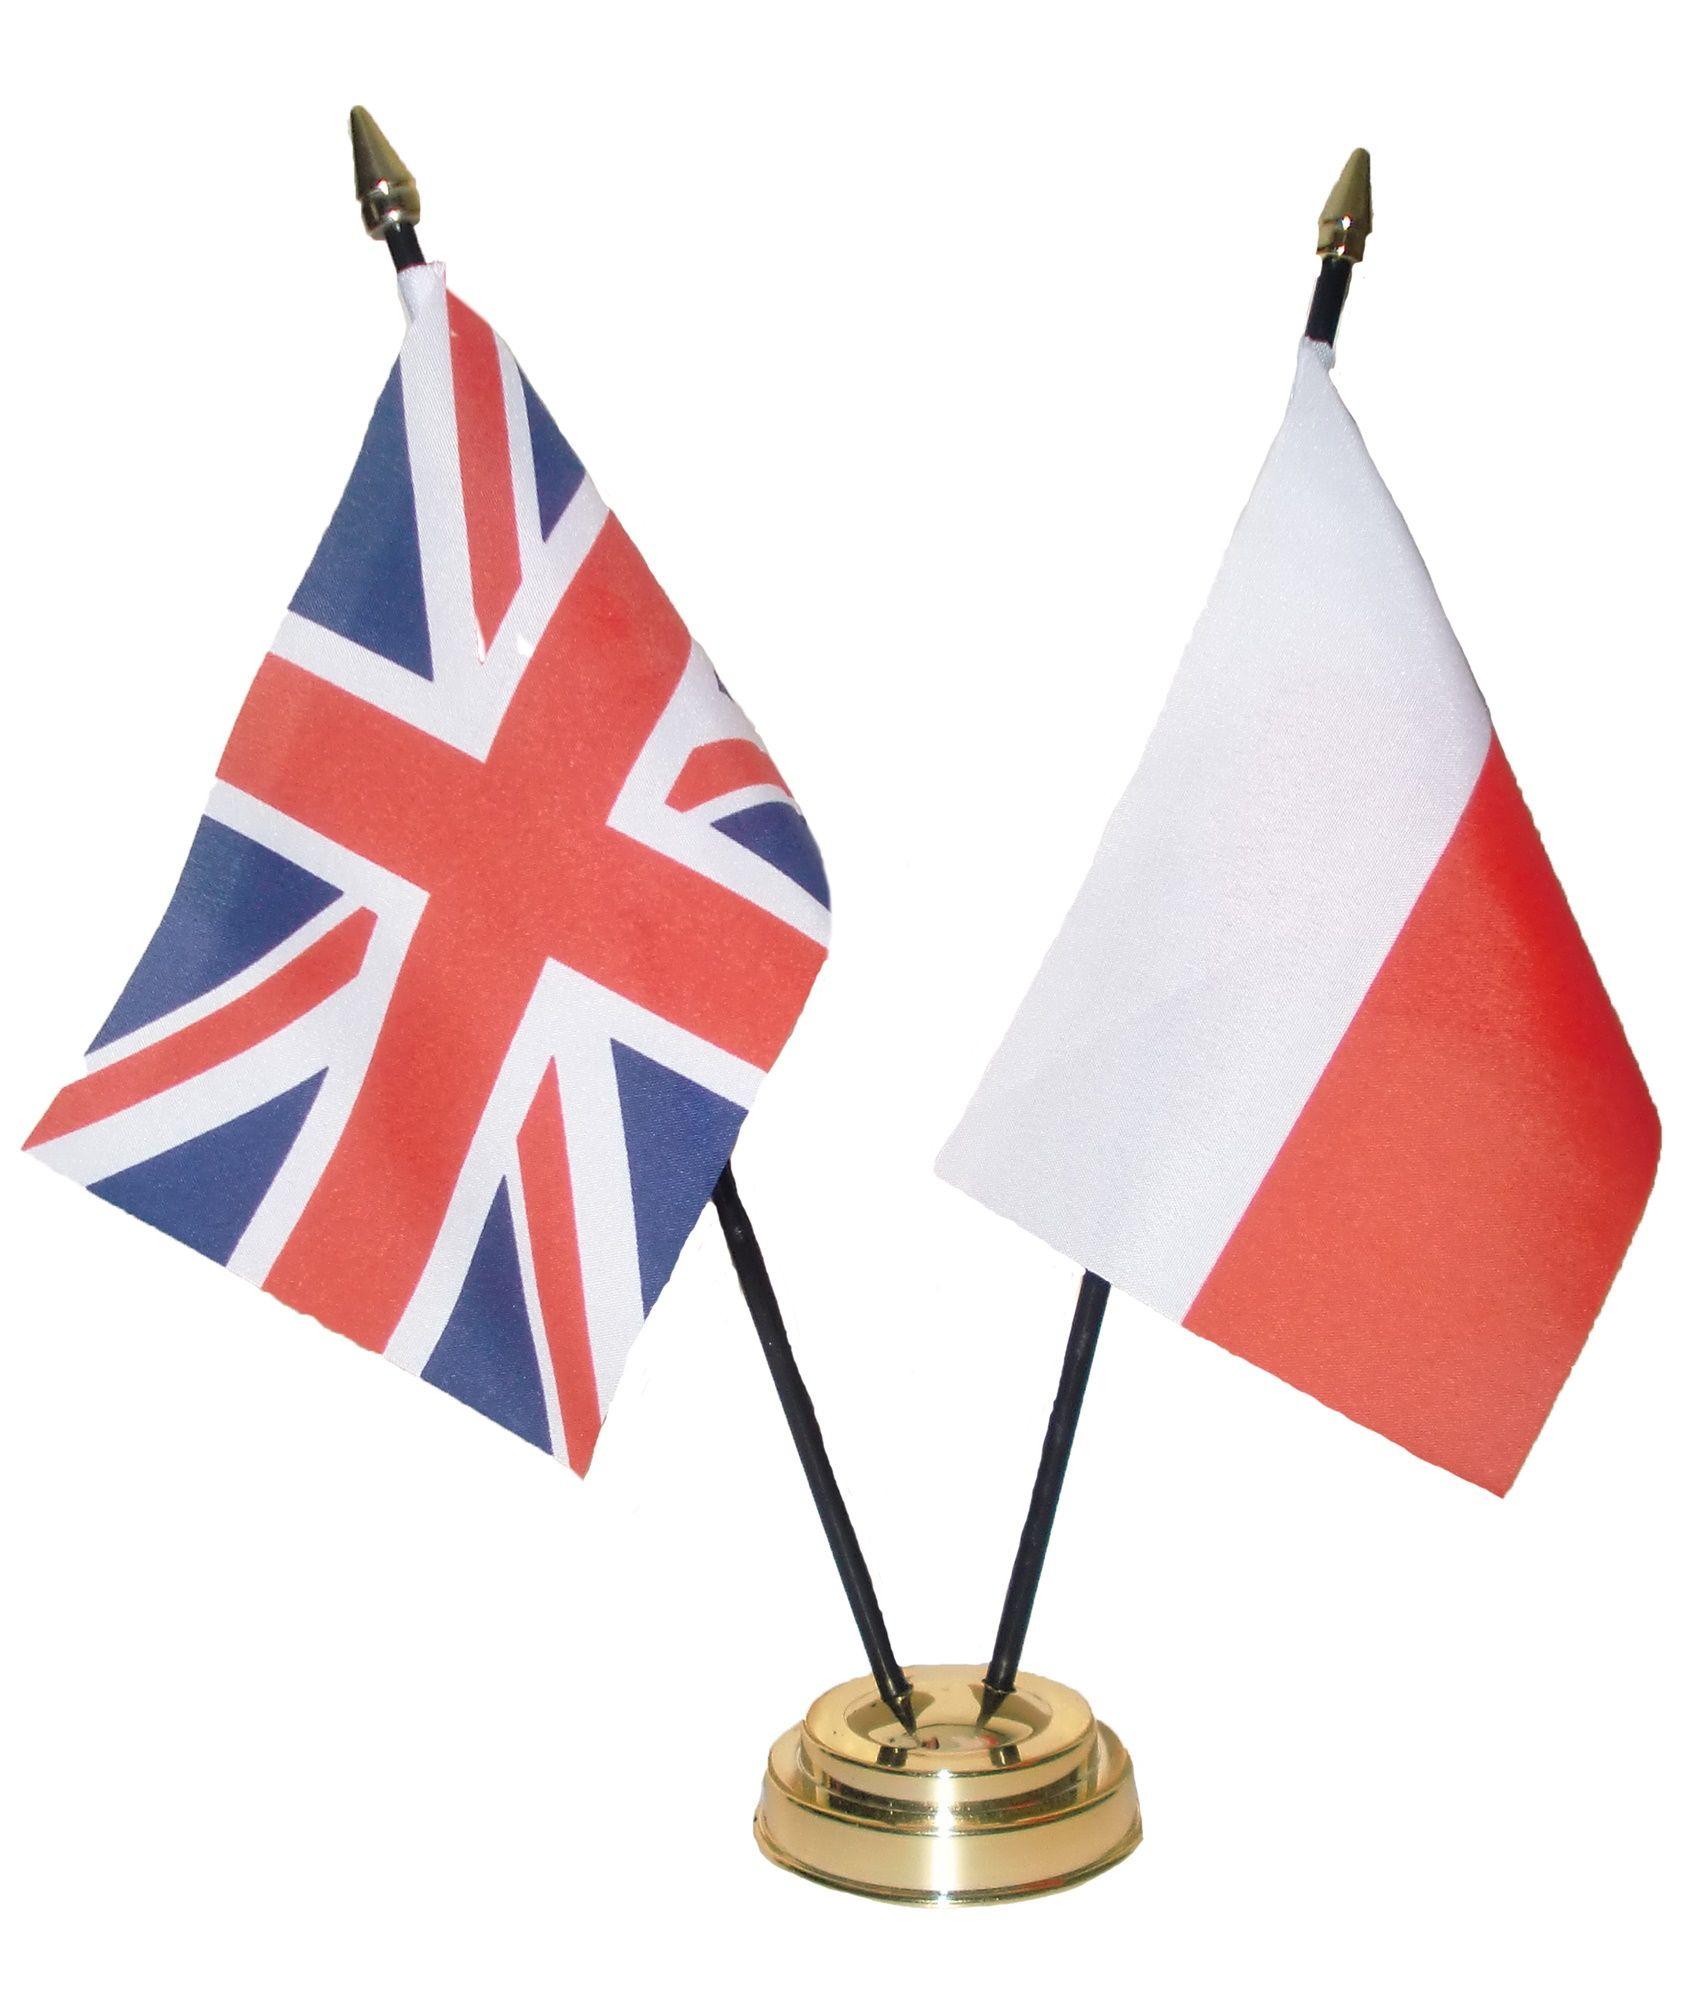 union jack poland table flag set with golden base